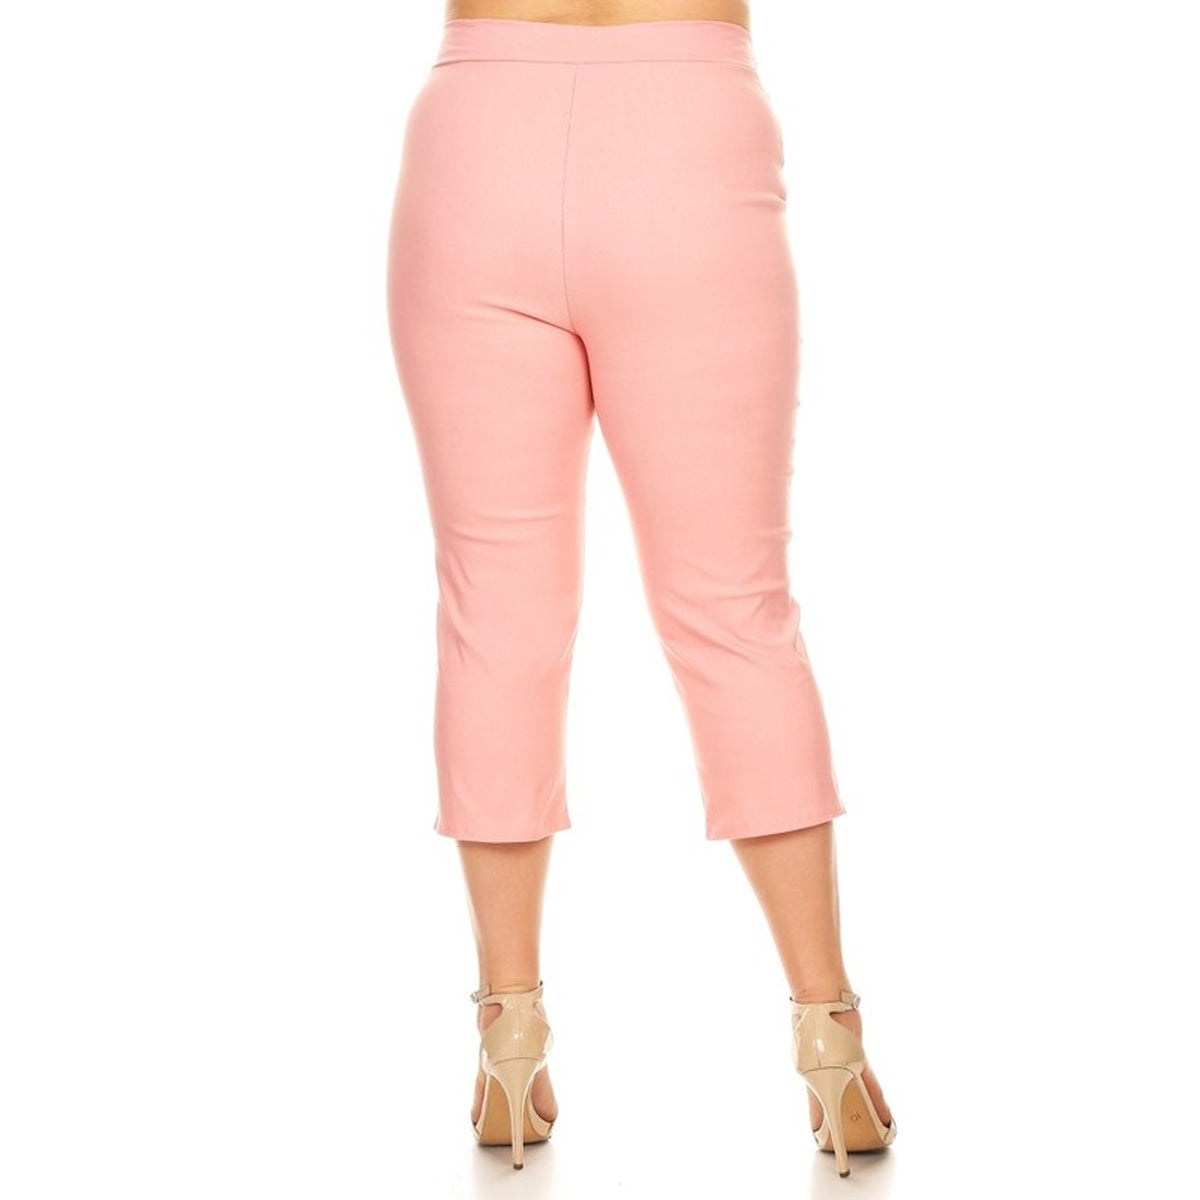 to buy exceptional range of styles and colors how to purchase Women's Plus Size Solid Pink Pants